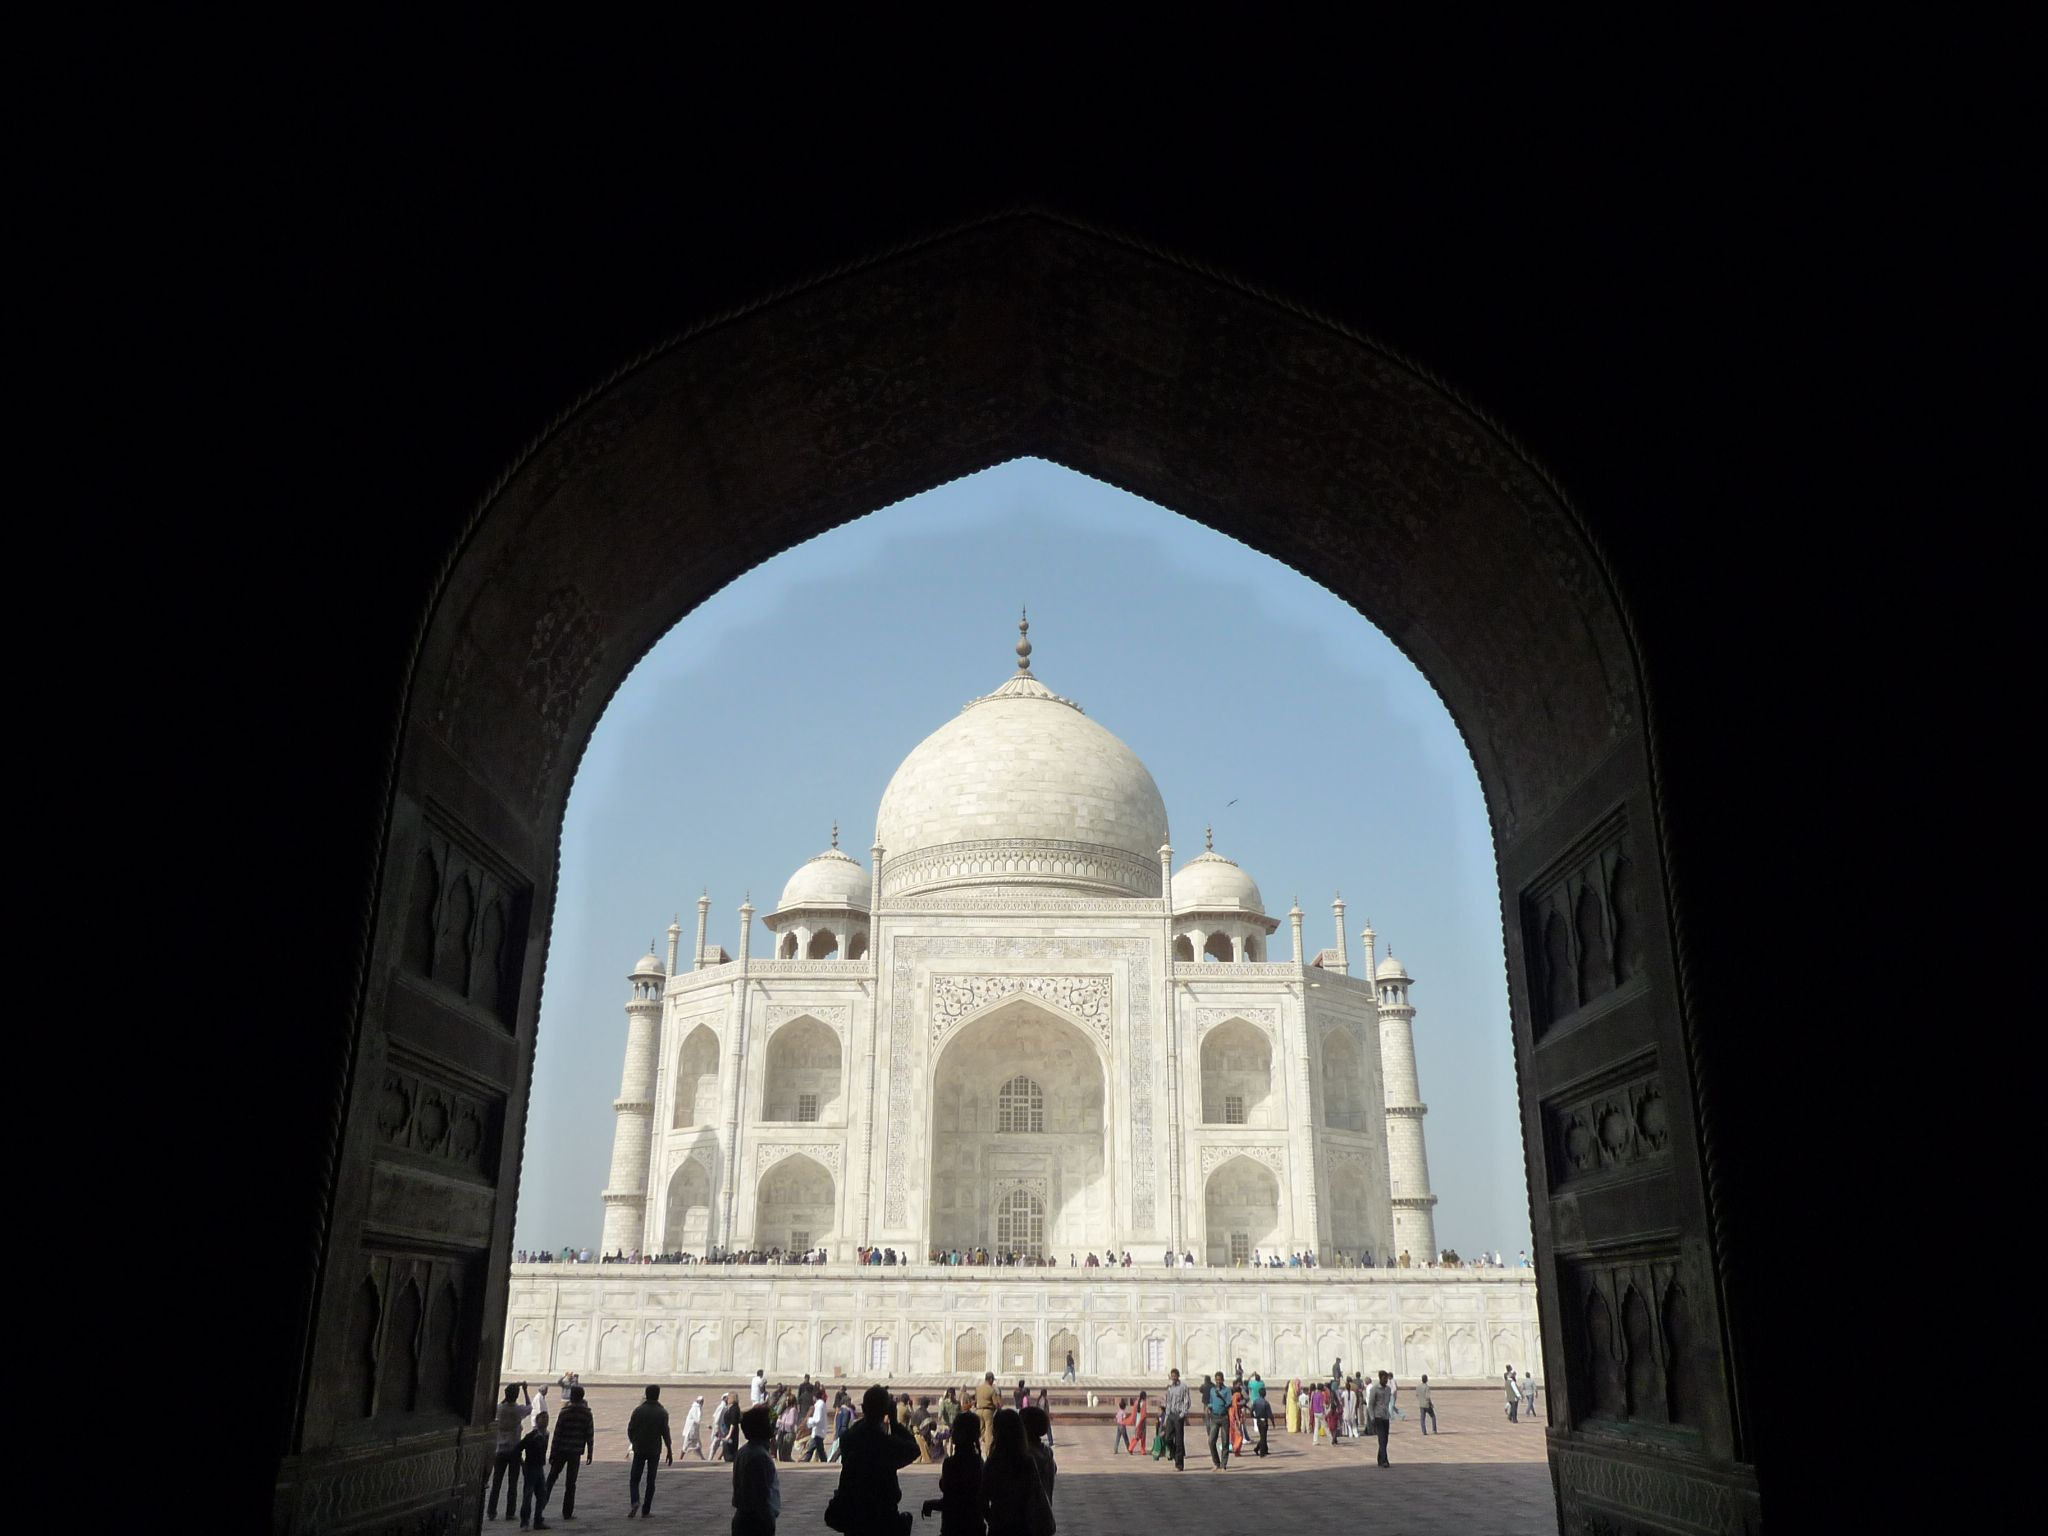 A beautiful view og the Taj Mahal, one of the 7 world wonders! by Get Out Photography